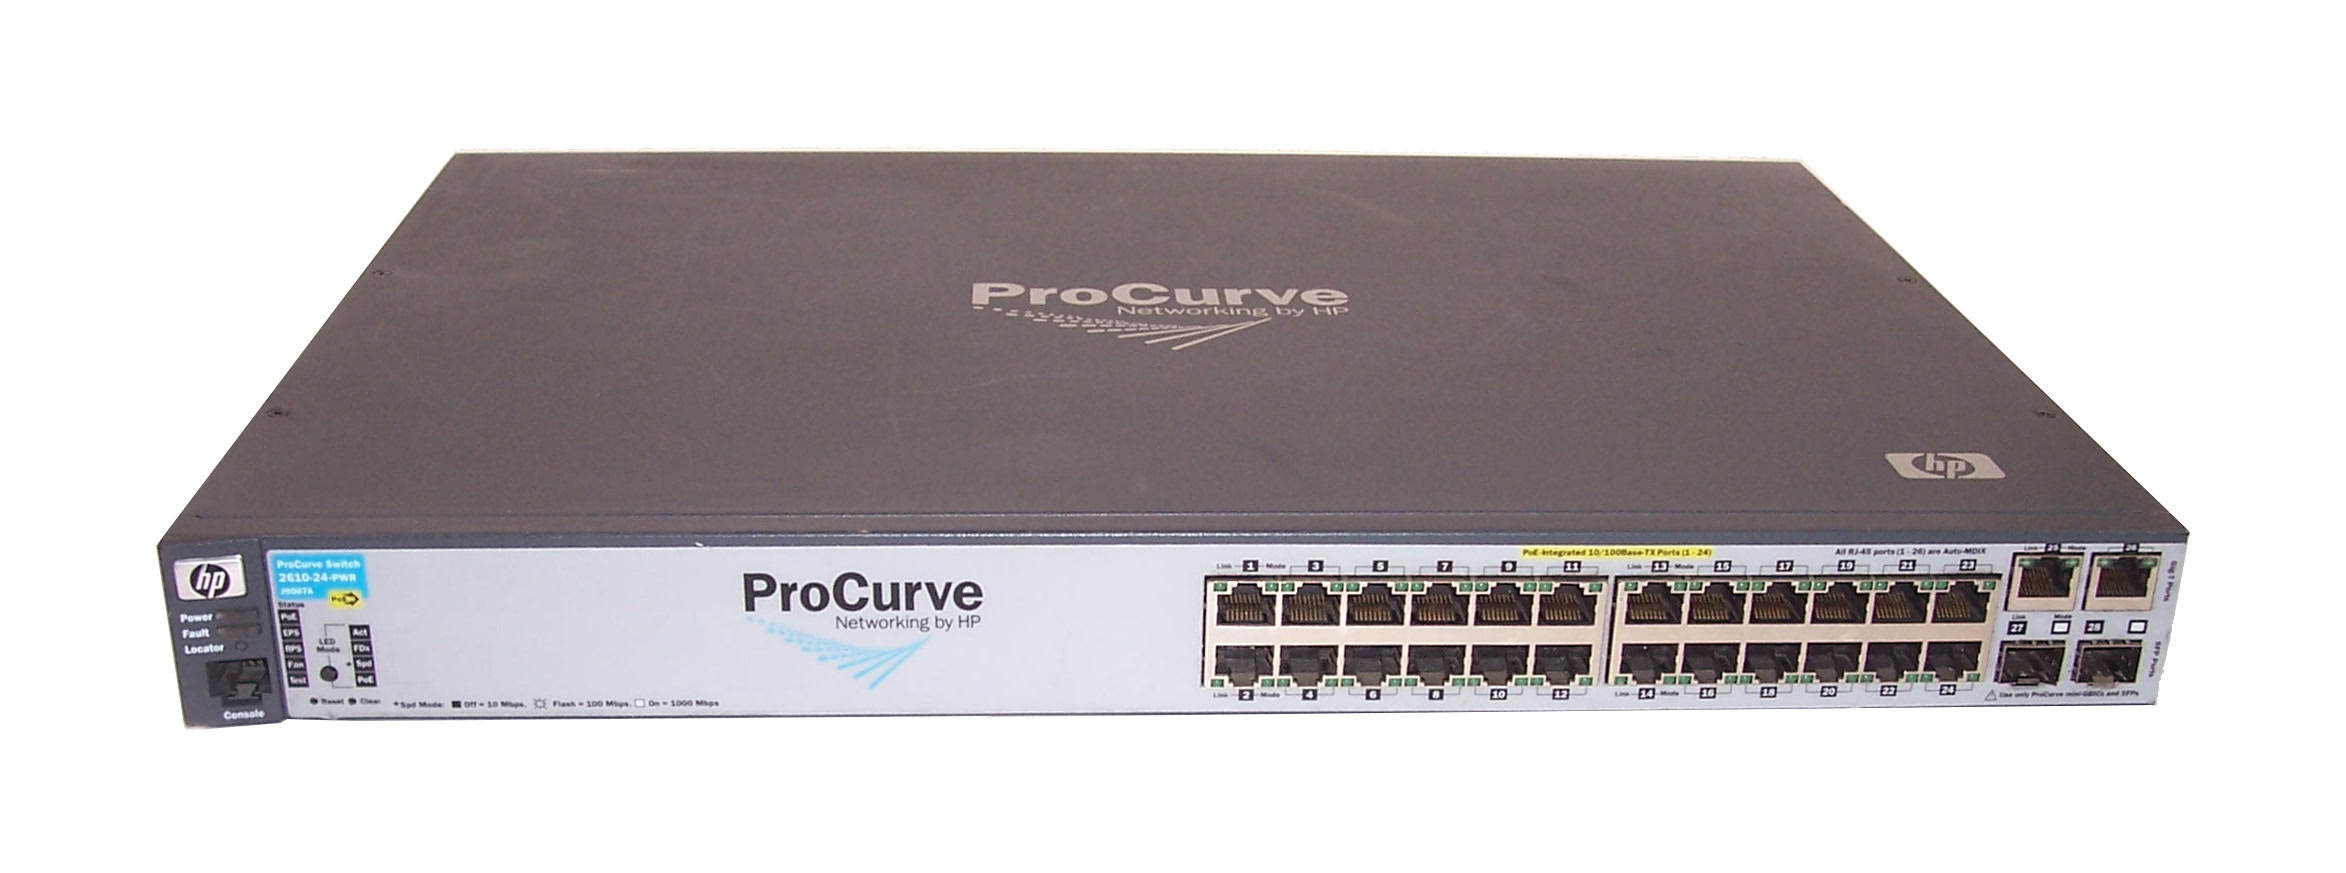 hp 2610 switch manual today manual guide trends sample u2022 rh brookejasmine co hp procurve 2610 user guide hp procurve 2610-48 manual